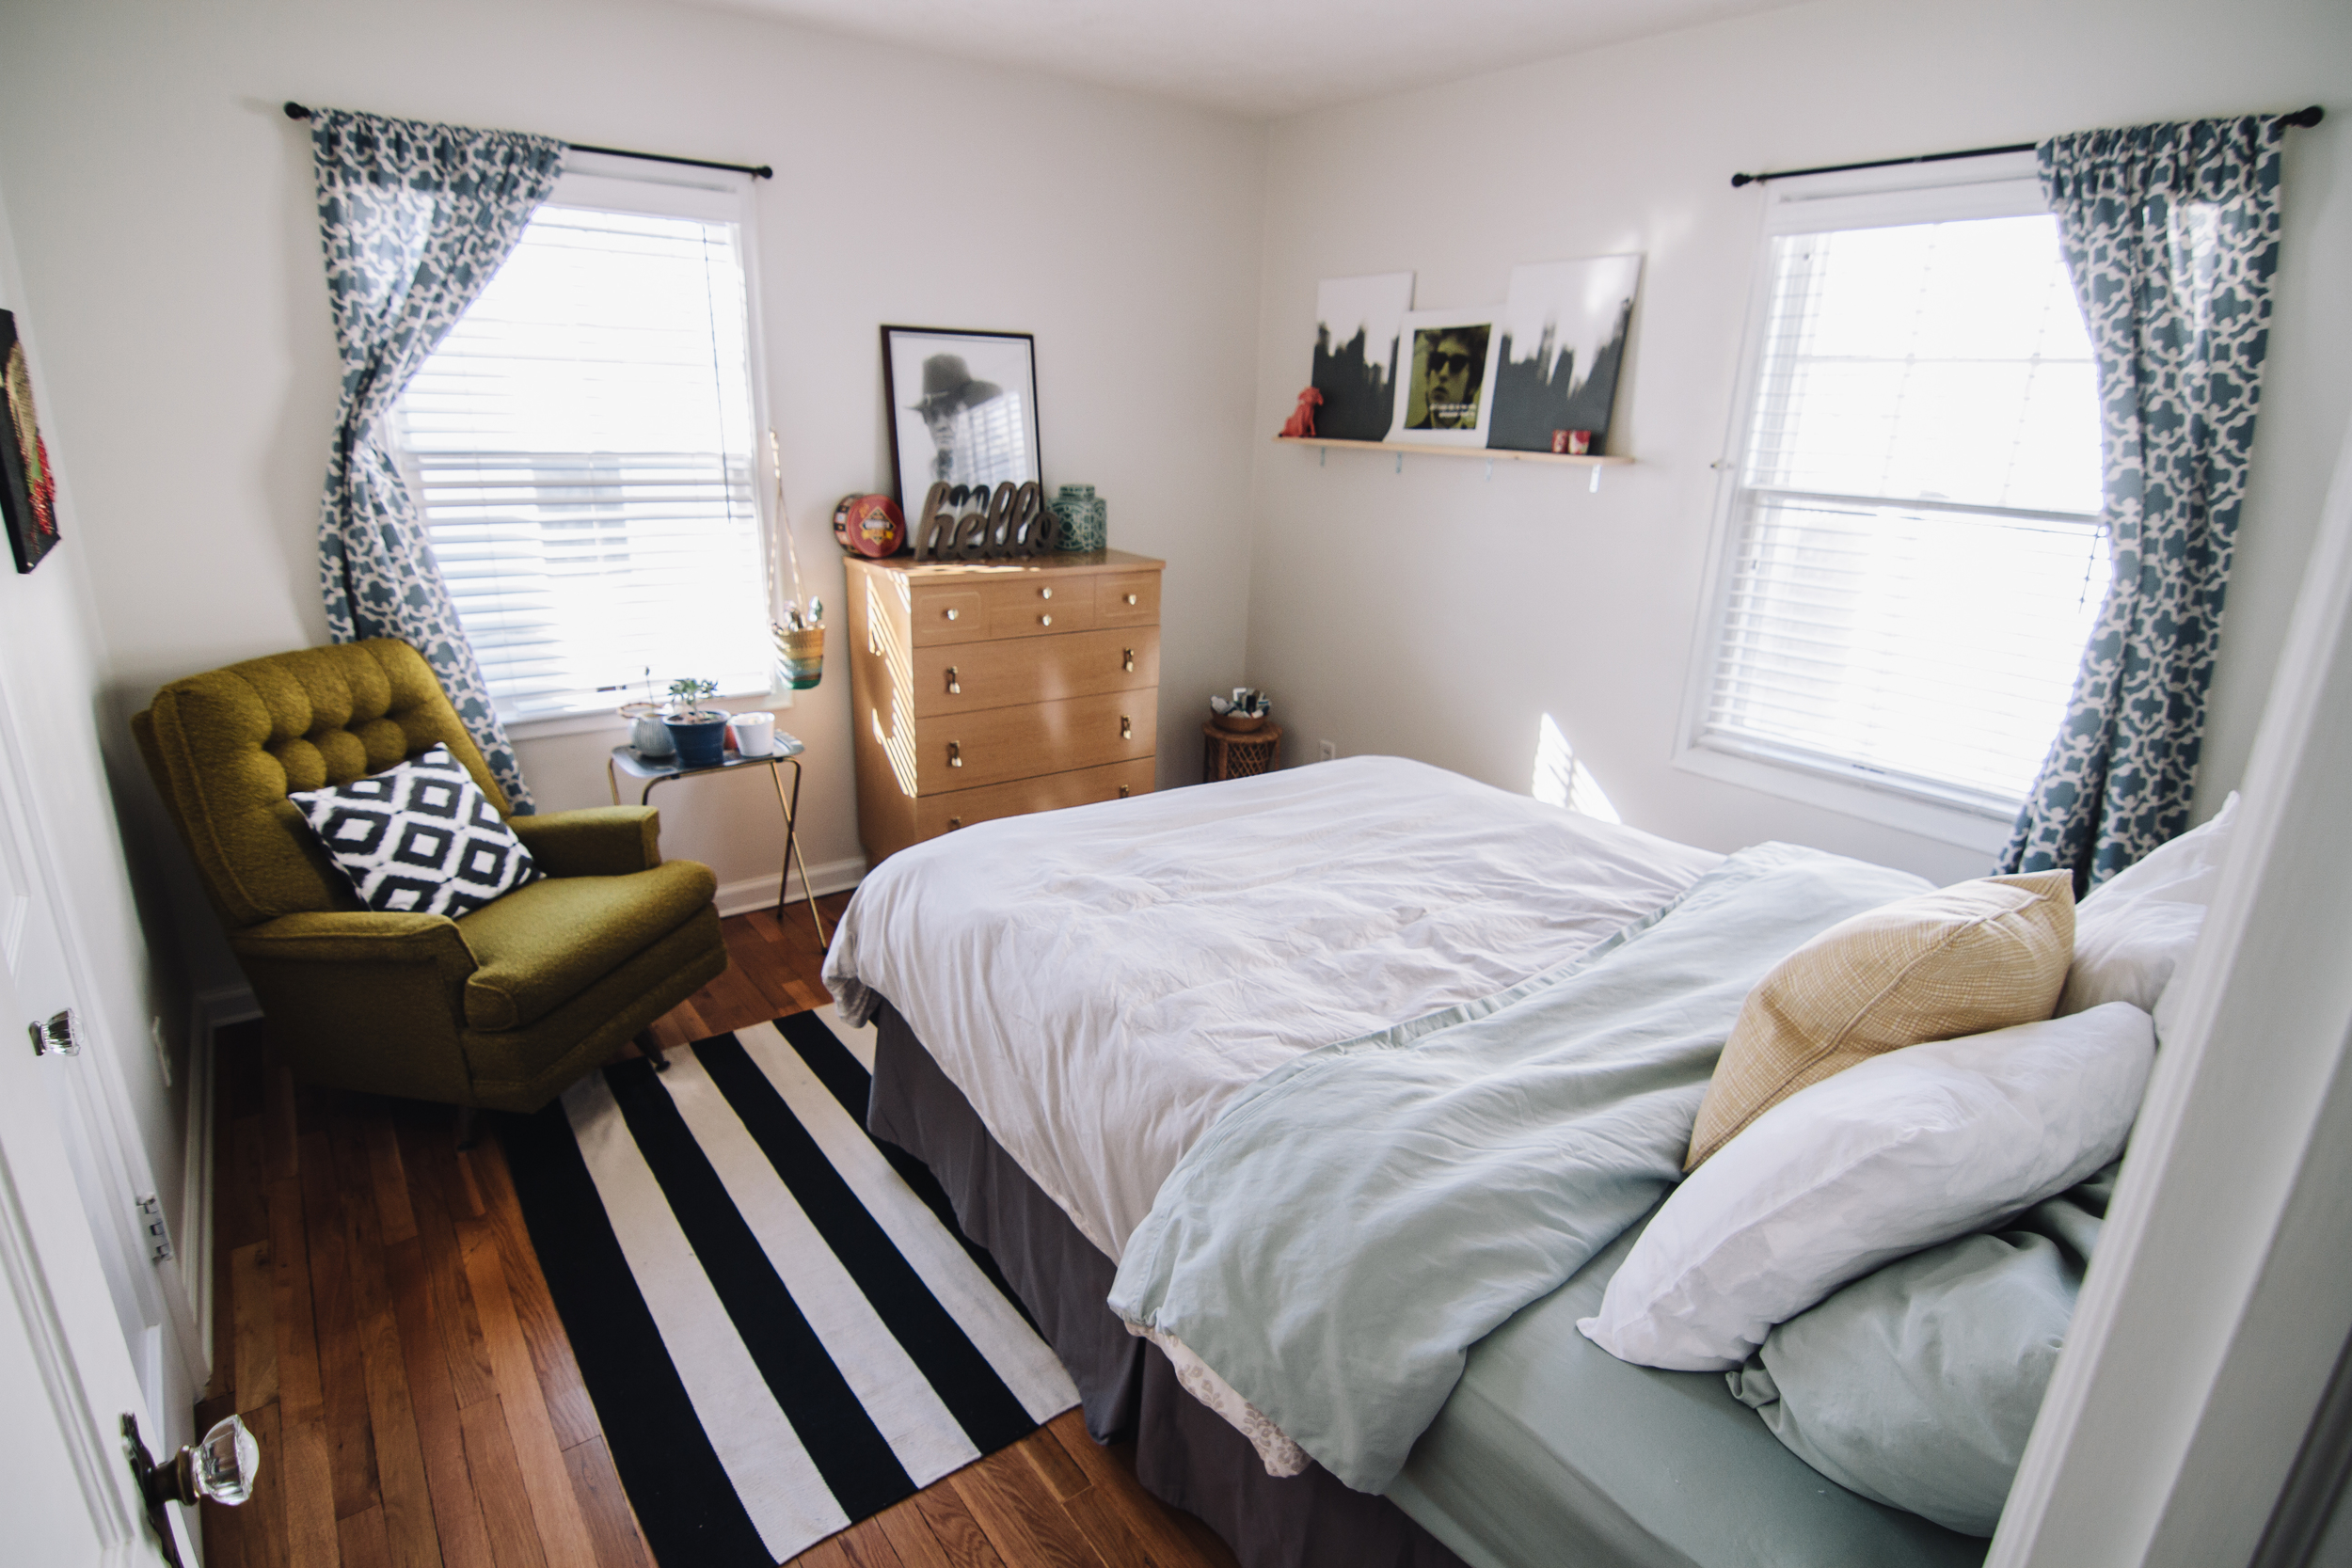 I love the natural light this room gets!